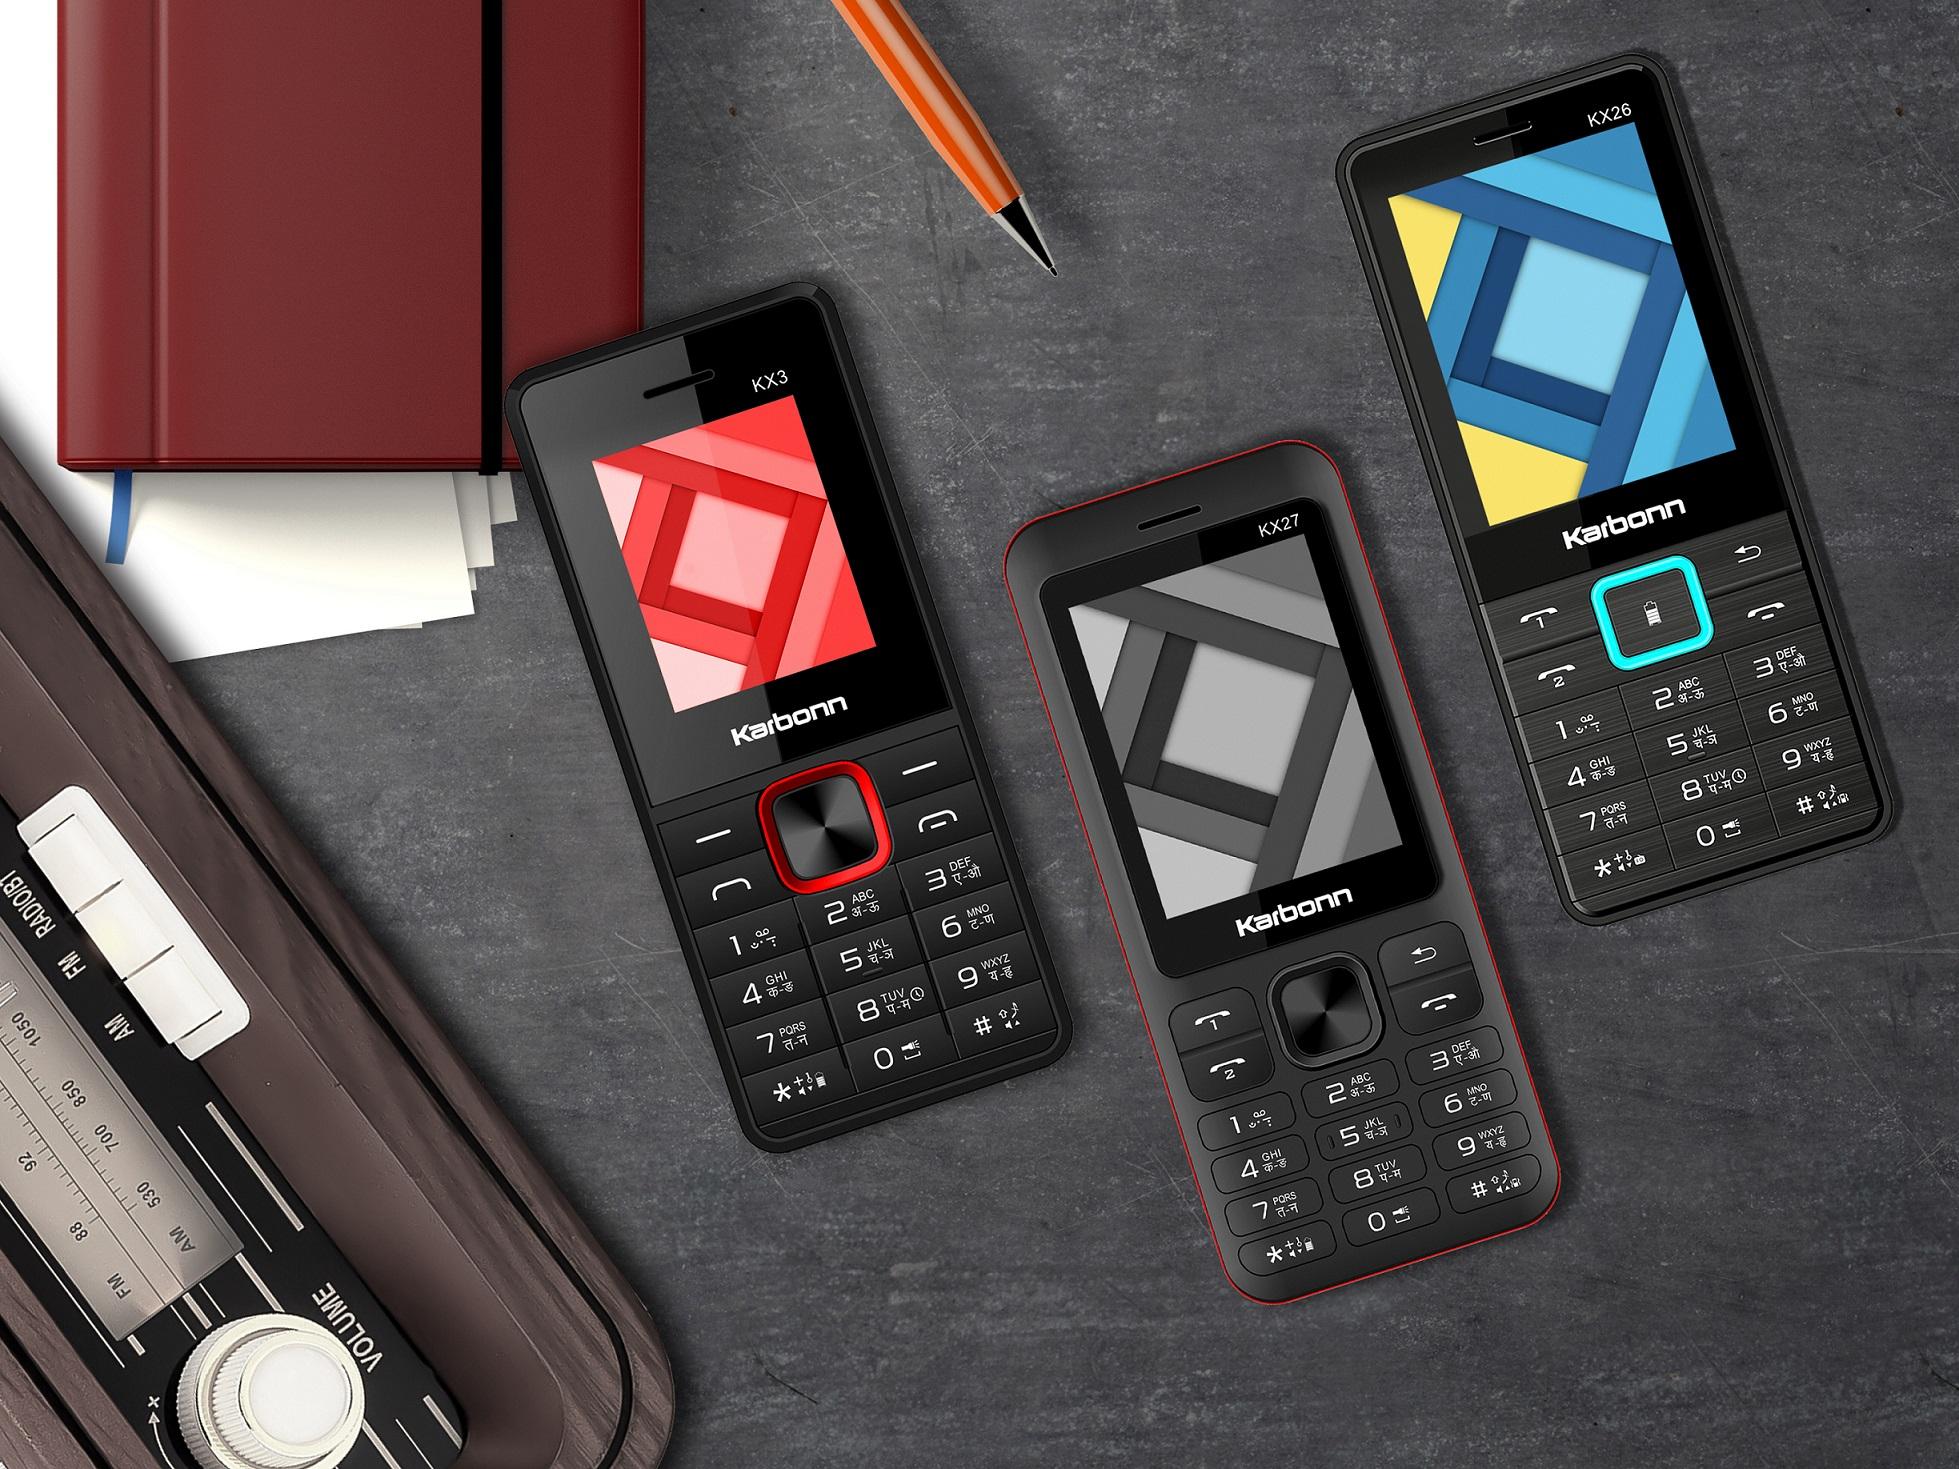 Karbonn Mobiles launches 4 features phones, Price starts at Rs 700